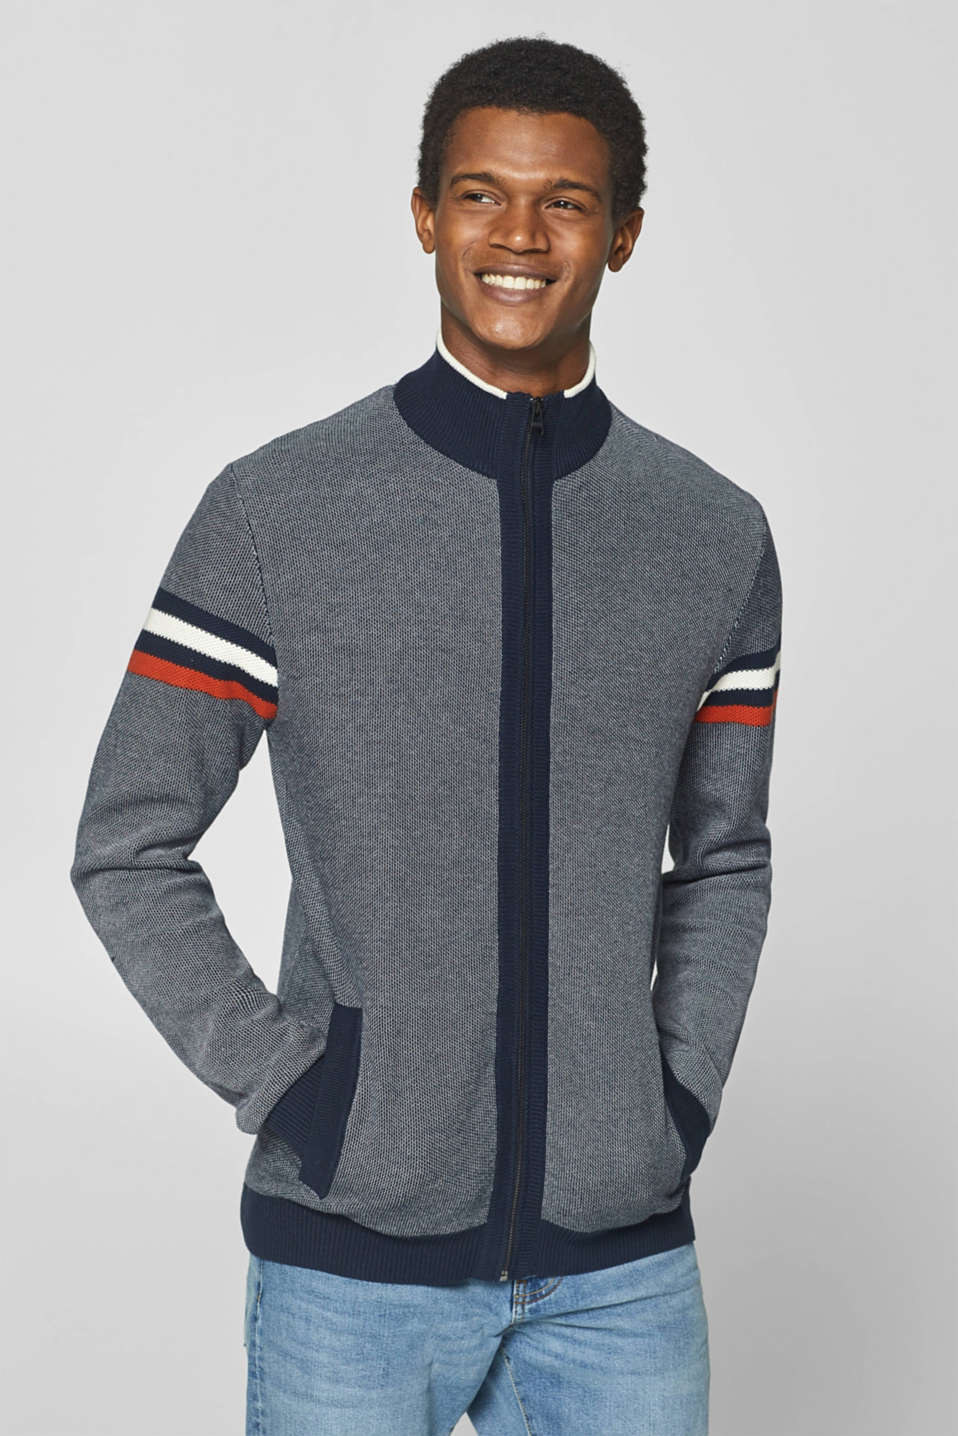 Esprit - Zip-up cardigan with stripes, made of 100% cotton